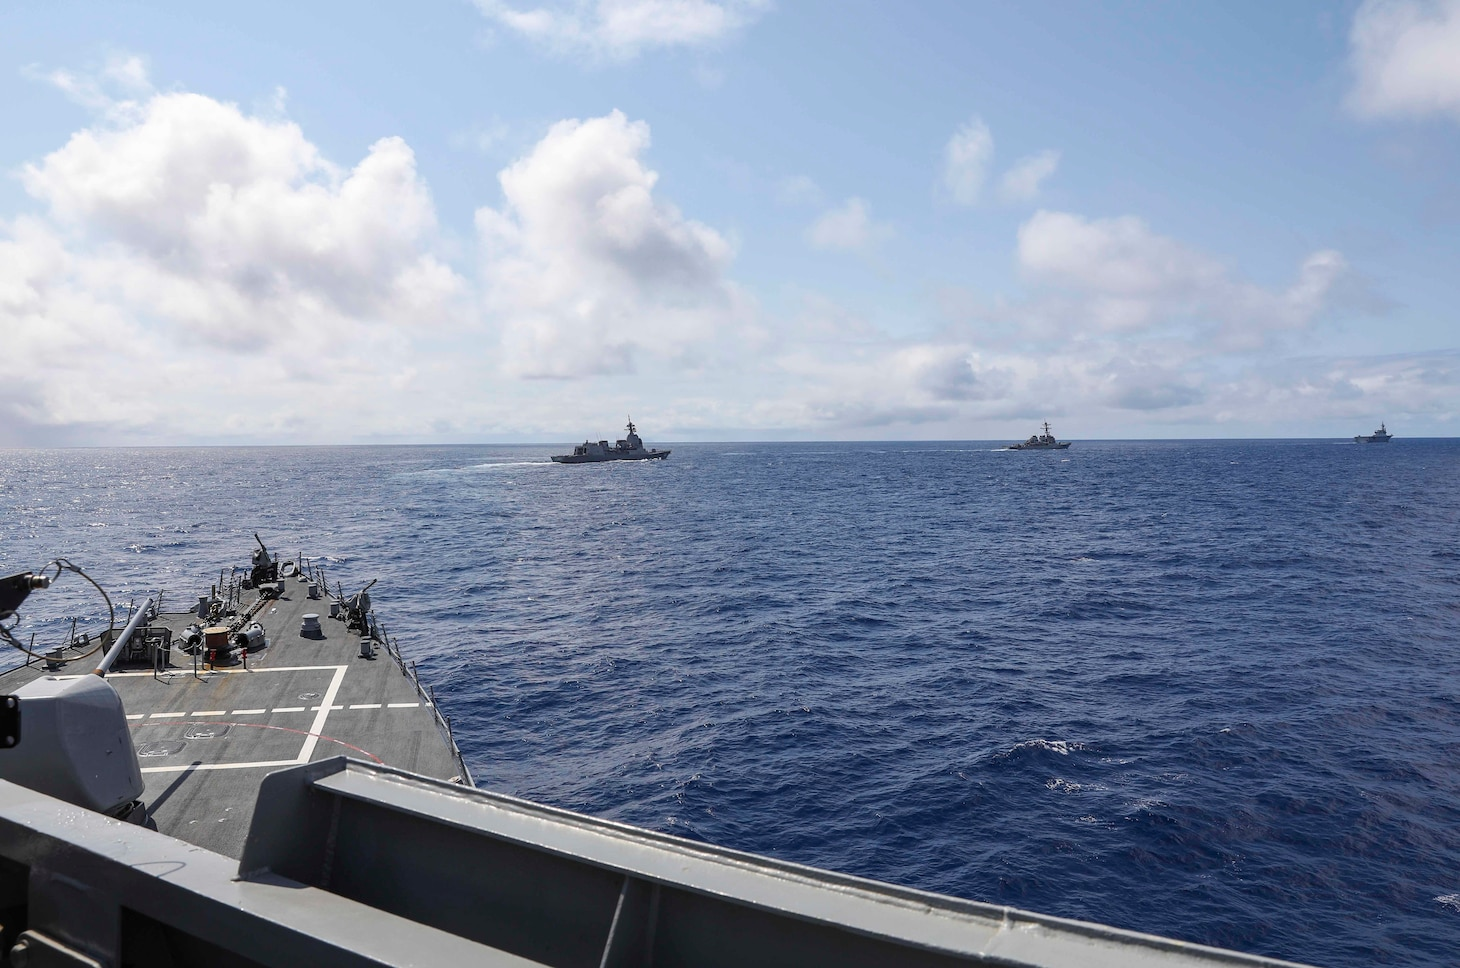 210303-N-FO714-1065 PHILIPPINE SEA (March 3, 2021) - The Arleigh Burke-class guided-missile destroyers USS Benfold (DDG 65) and USS John S. McCain (DDG 56) sail in formation with the Japan Maritime Self-Defense Force guided-missile destroyer JS Shiranui (DDG 120) and helicopter destroyer JS Ise (DDH 182) during the annual U.S.-Japan Bilateral Advanced Warfighting Training Exercise. BAWT focuses on joint training and interoperability of coalition forces, and enables real-world proficiency and readiness in response to any contingency. (U.S. Navy photo by Mass Communication Specialist 2nd Class Deanna C. Gonzales)